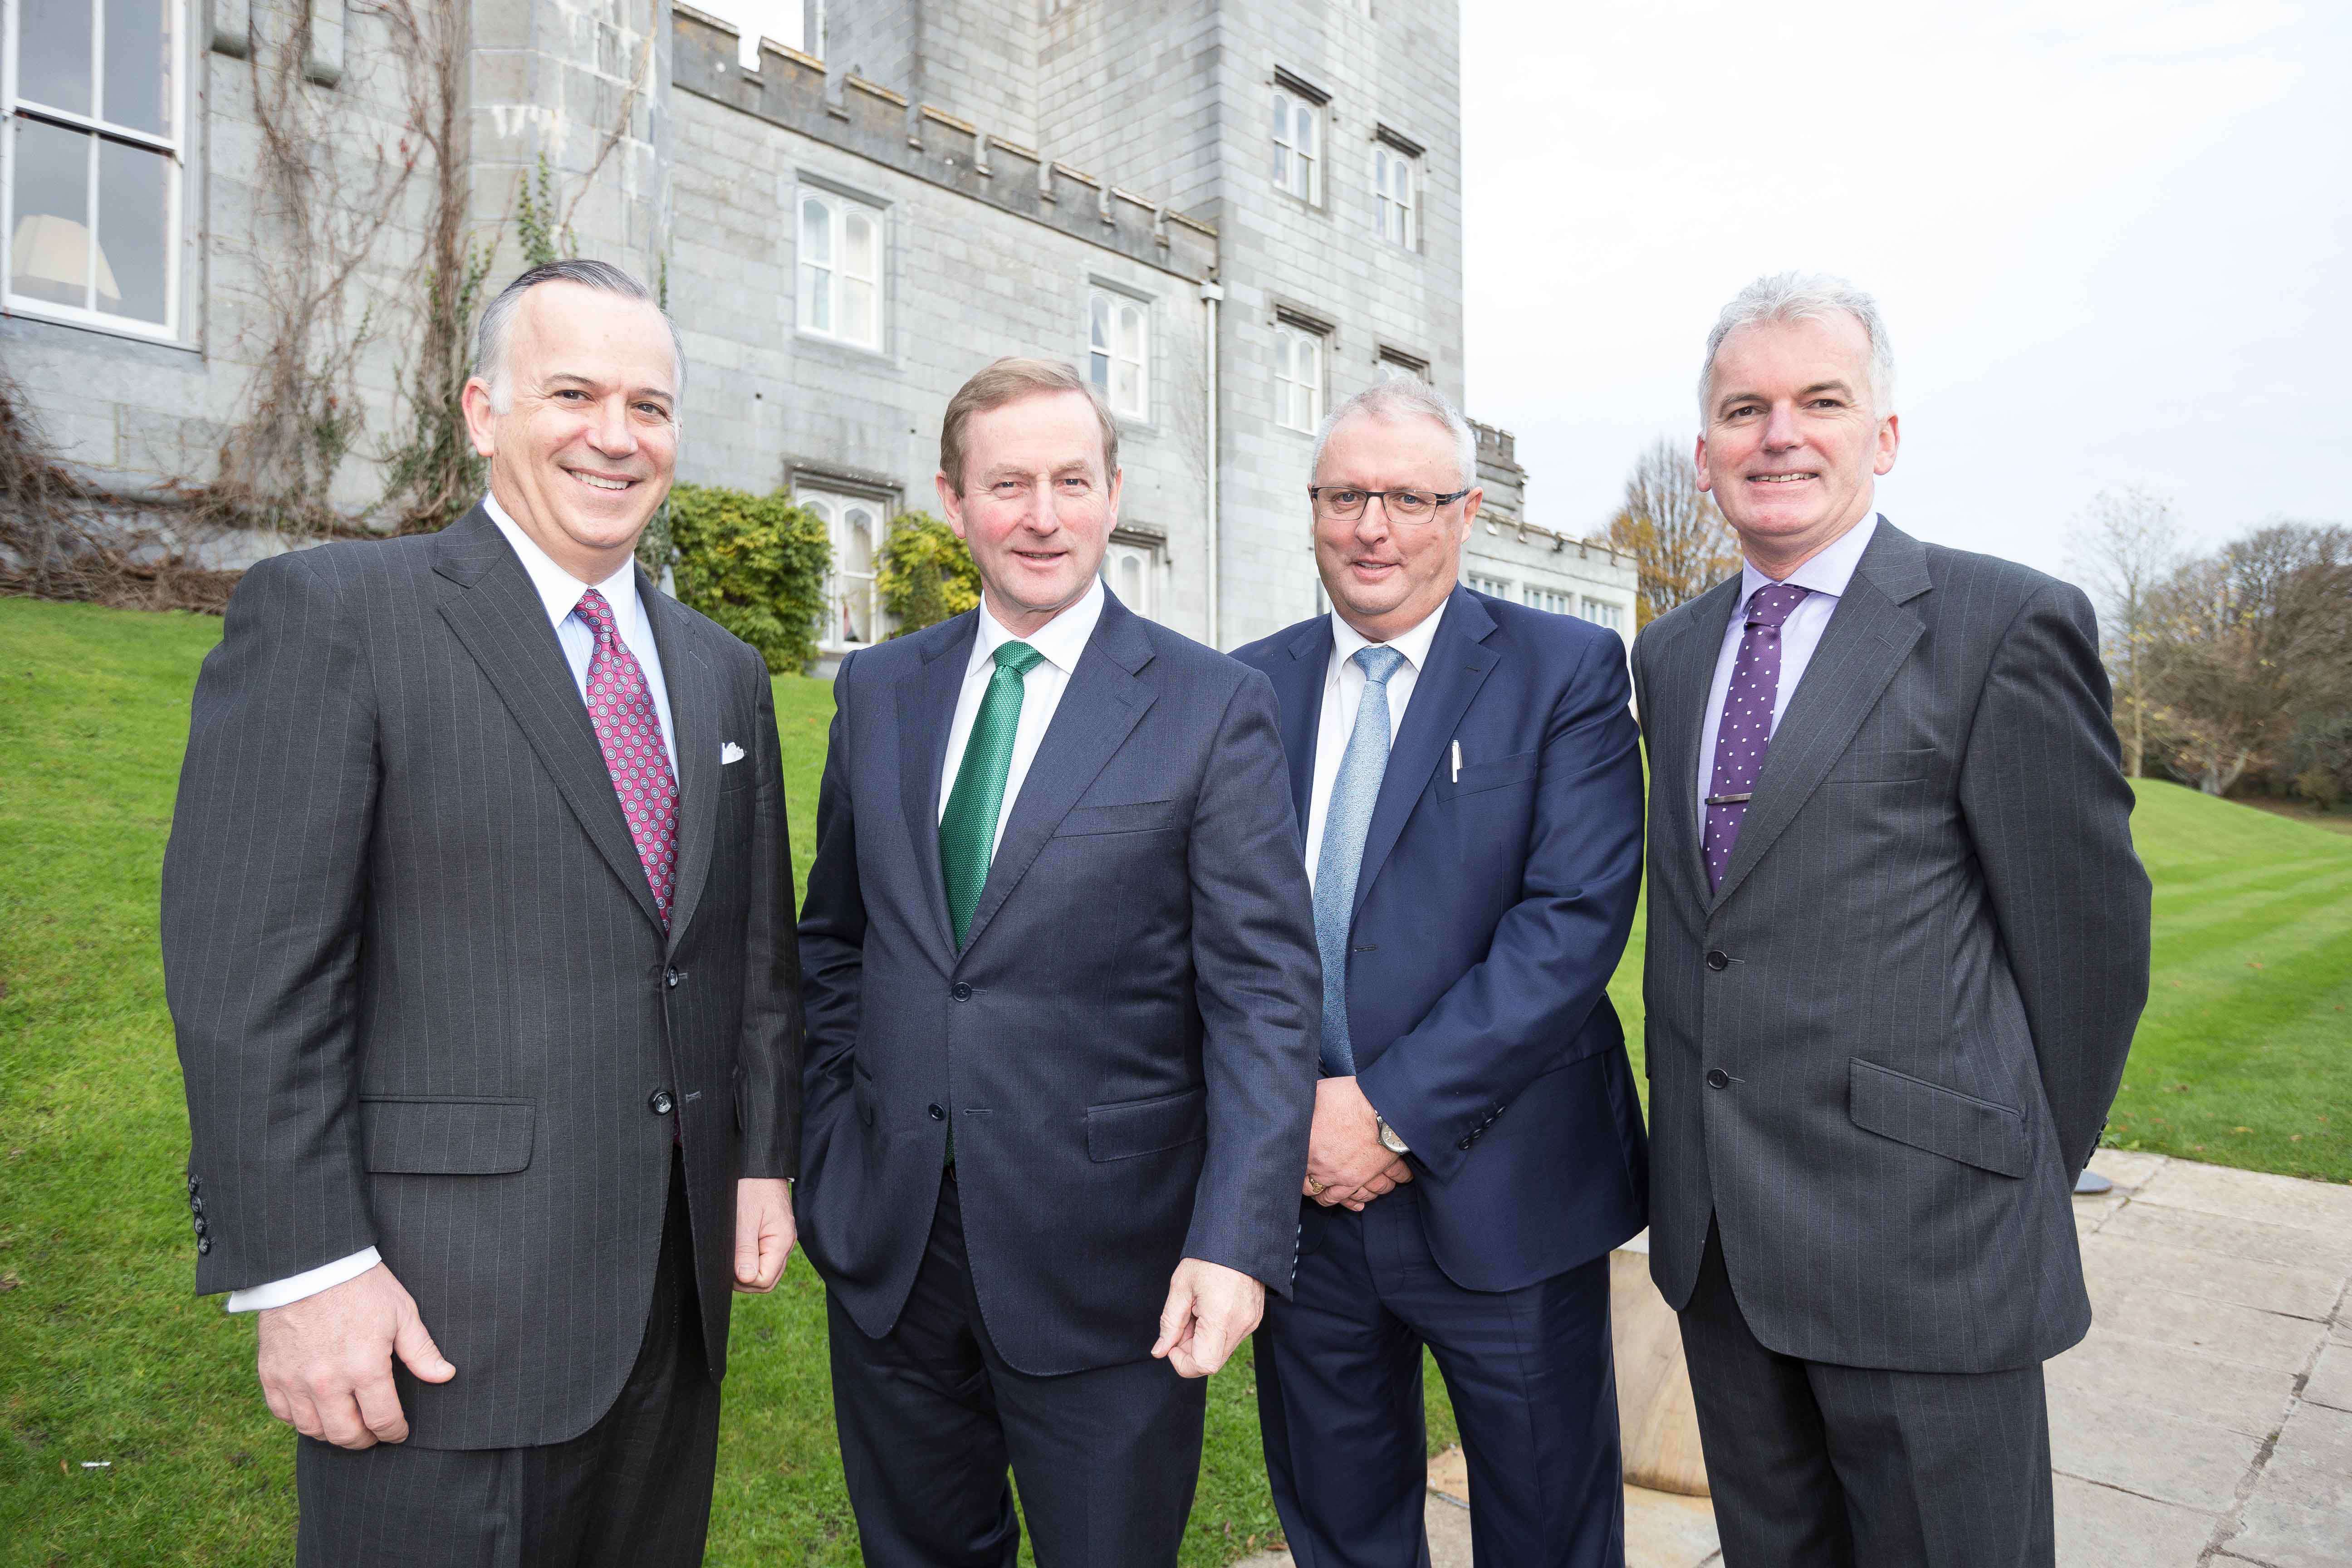 An Taoiseach Enda Kenny T.D., pictured at Shannon Chamber president's lunch at Dromoland Castle with (from left): Tom McInerney, chief executive, Genworth Financial Inc; Bob Brannock, president, international protection, Genworth; and Kevin Thompstone, president, Shannon Chamber. Photo: Eamon Ward.